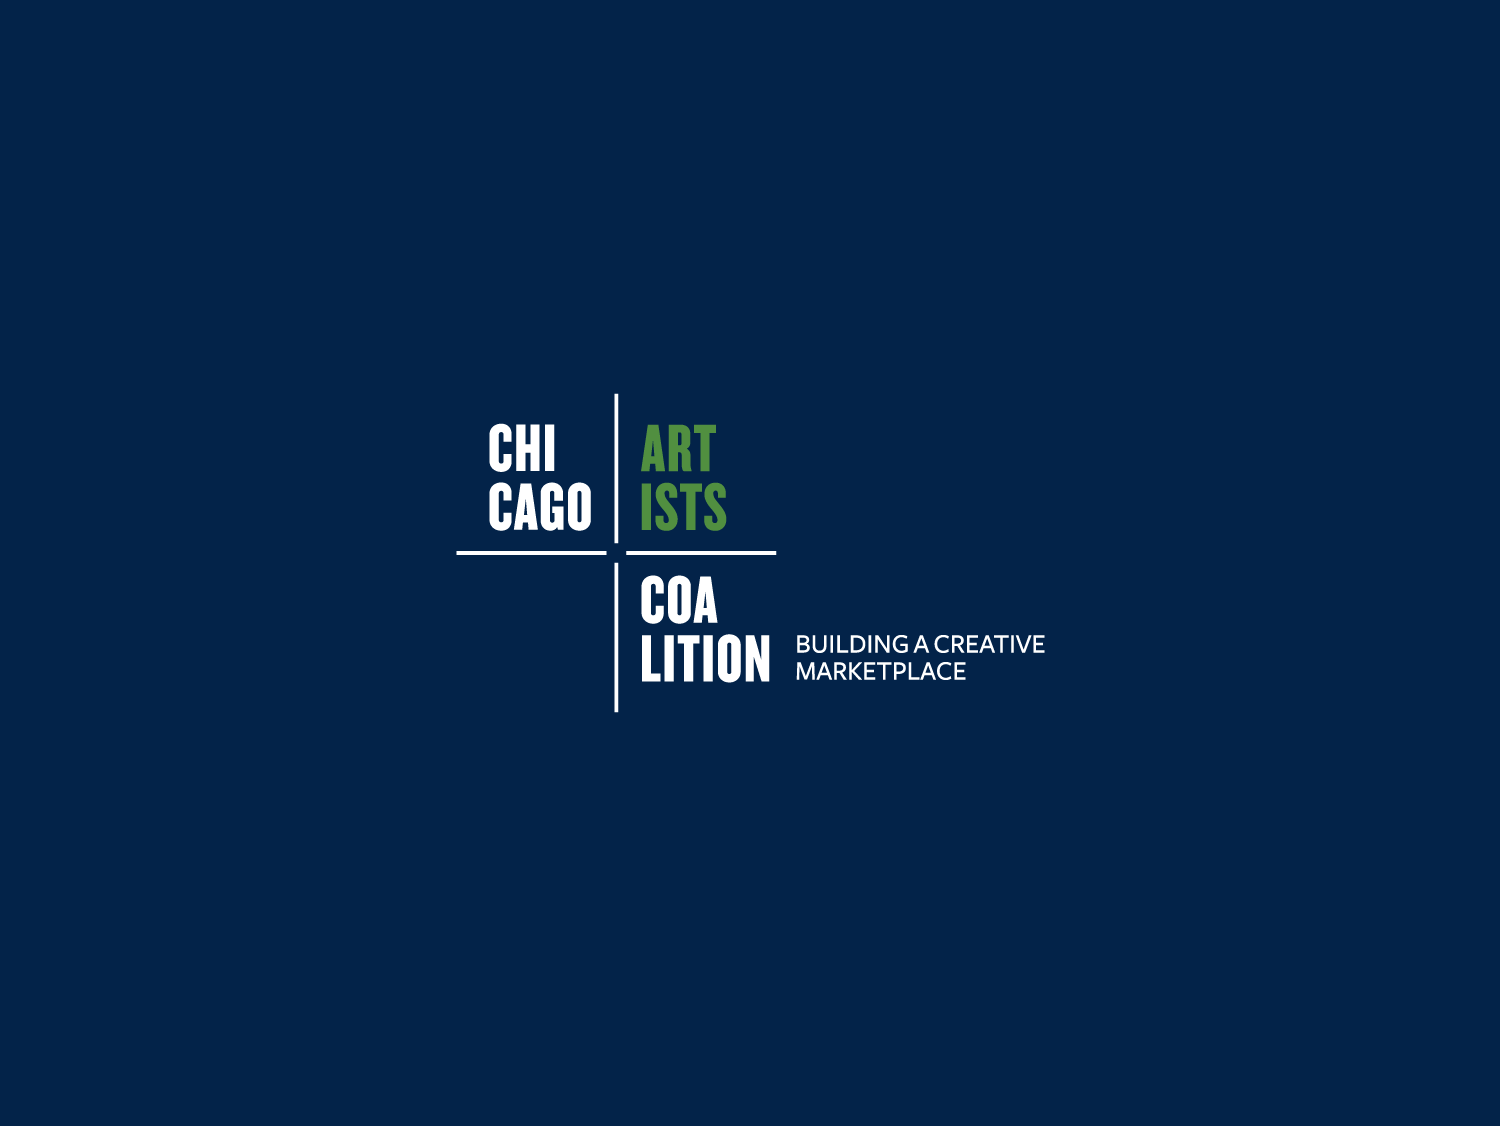 cac_logo_color.png